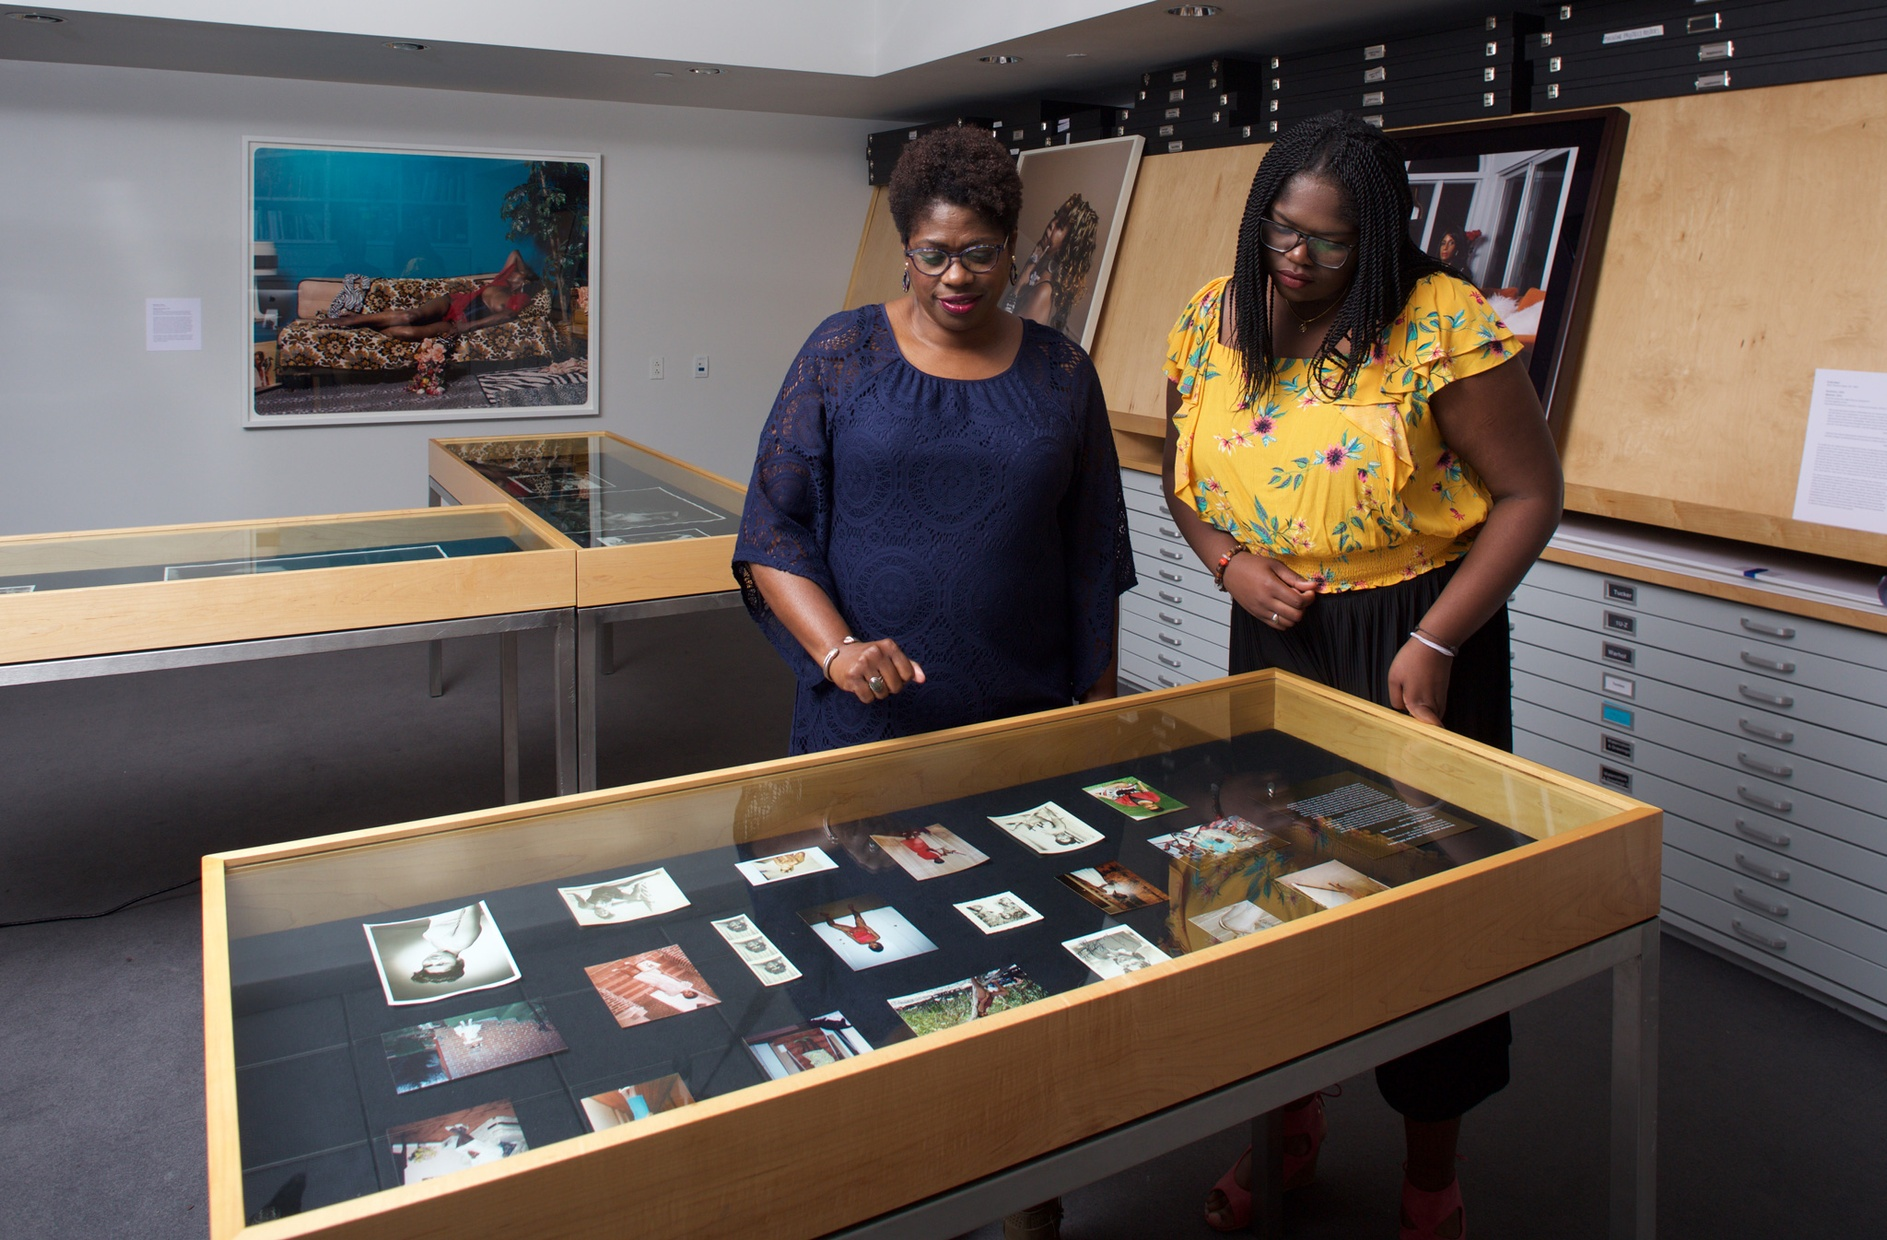 Two Black women, one older and one younger, look down at a glass case with photographs in it.